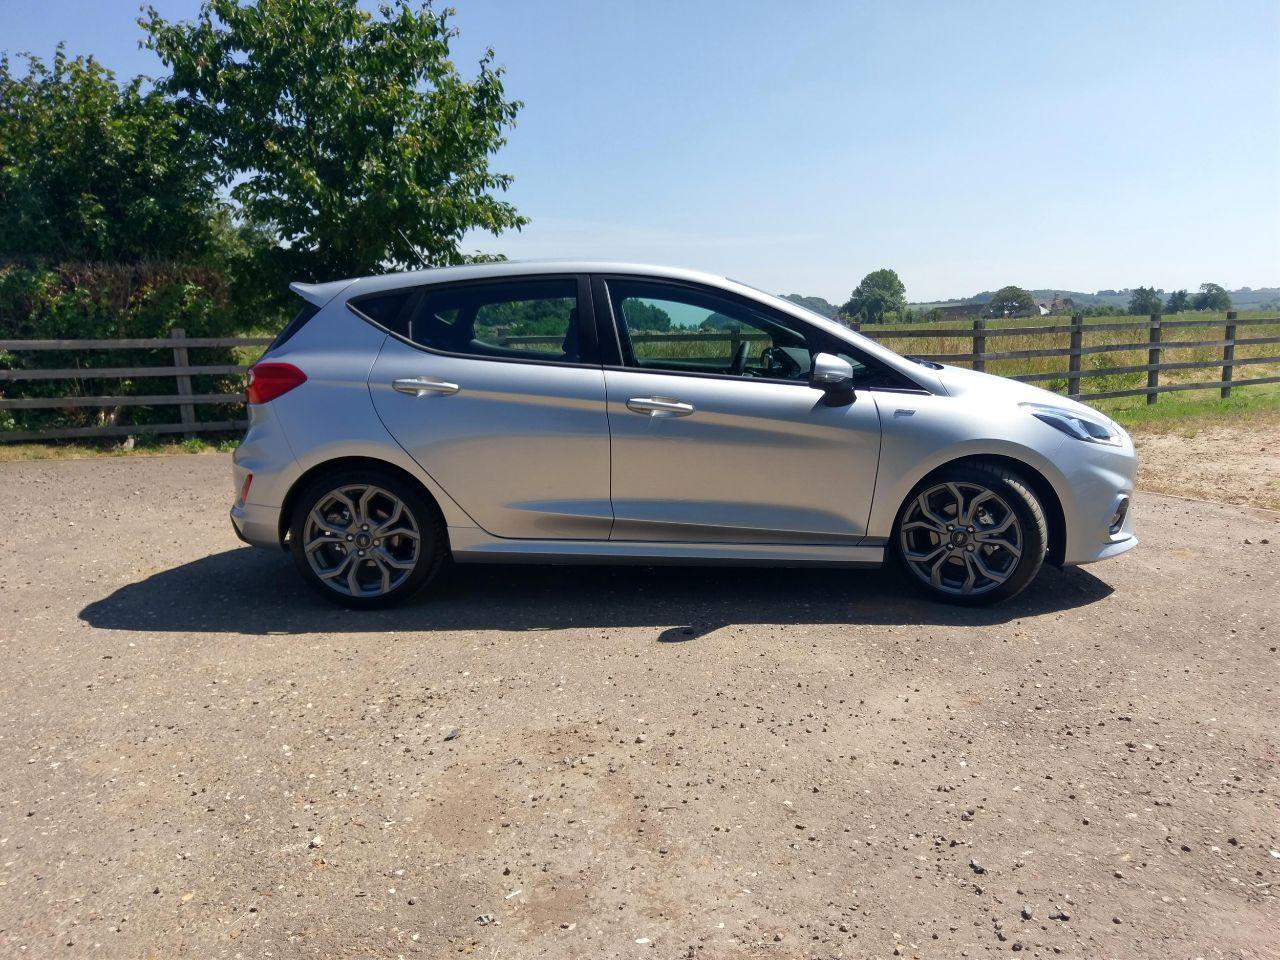 Ford Fiesta 1.0 Ecoboost ST Line 5Dr 125ps 2020/69 plate Hatchback Petrol Colour Choice